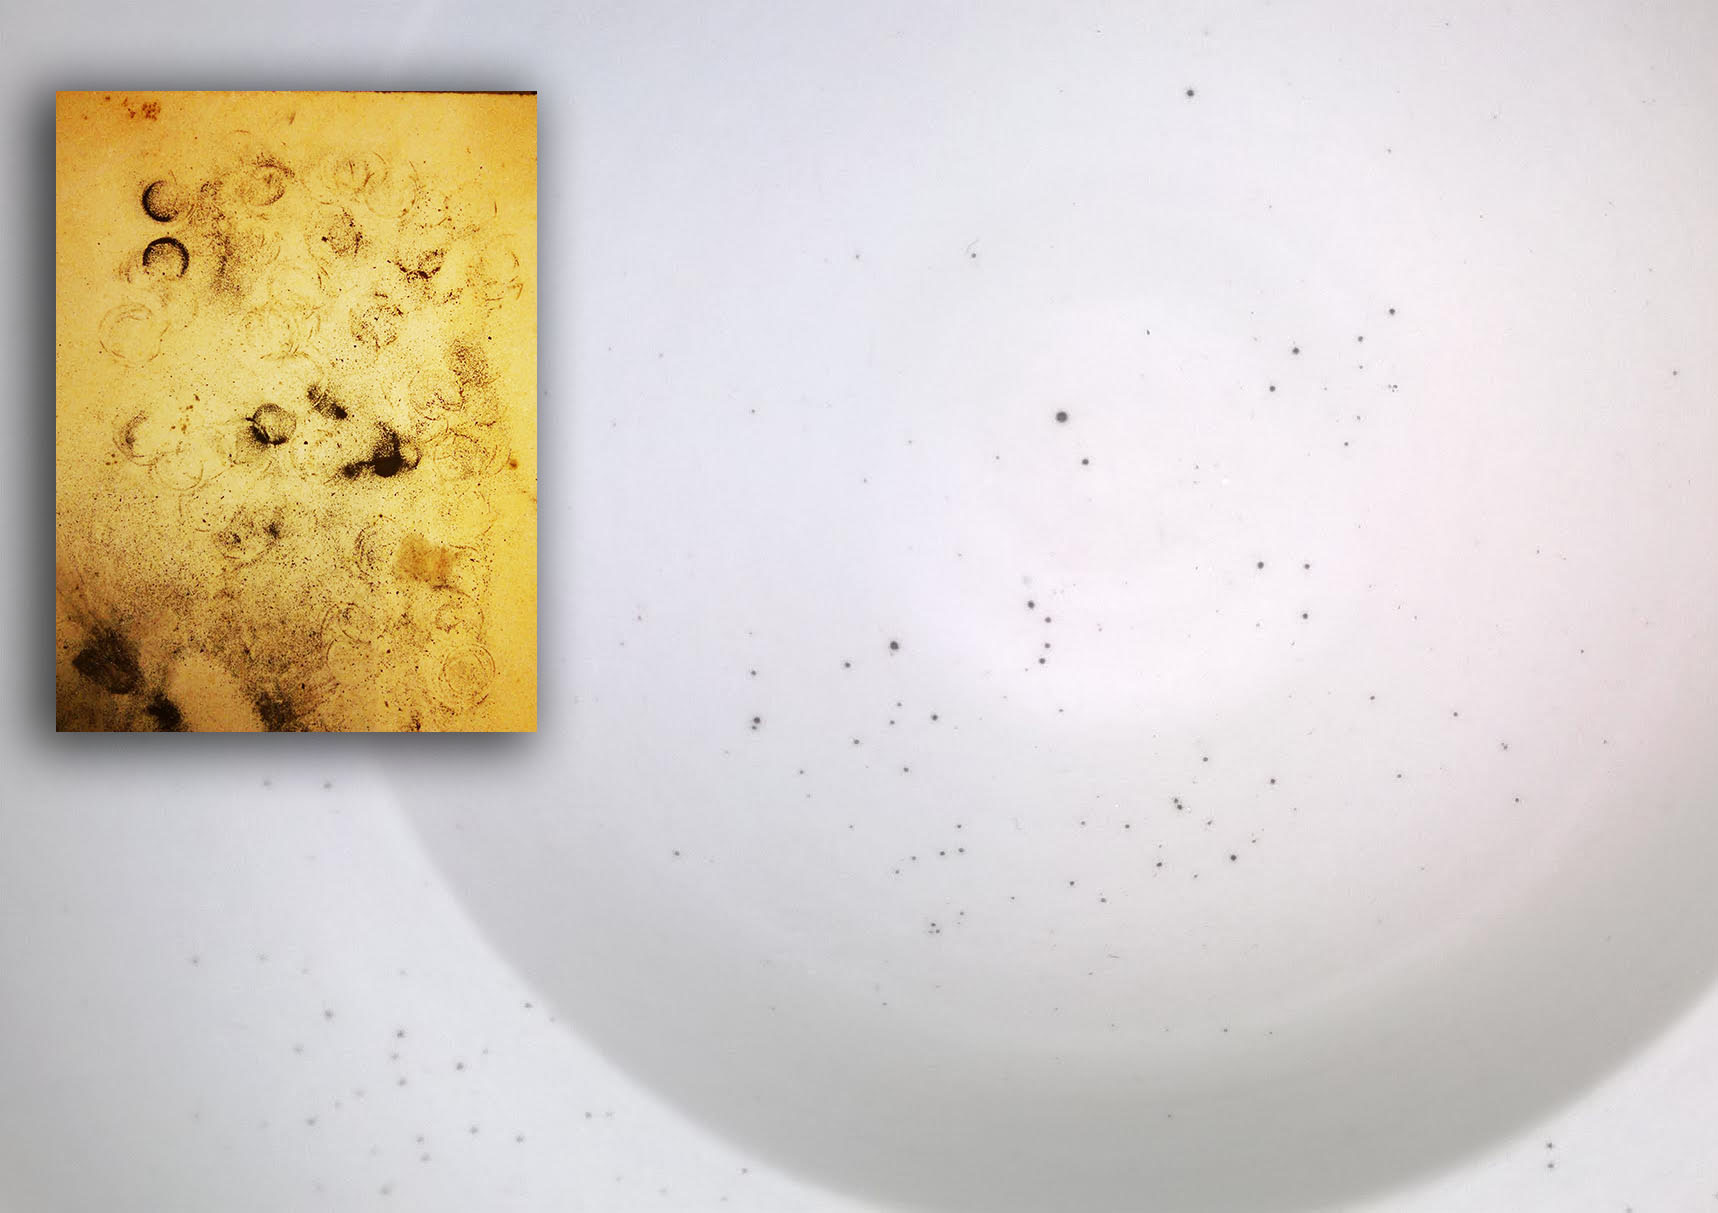 Fired specks in gas-fired porcelain. Where is the contamination from?